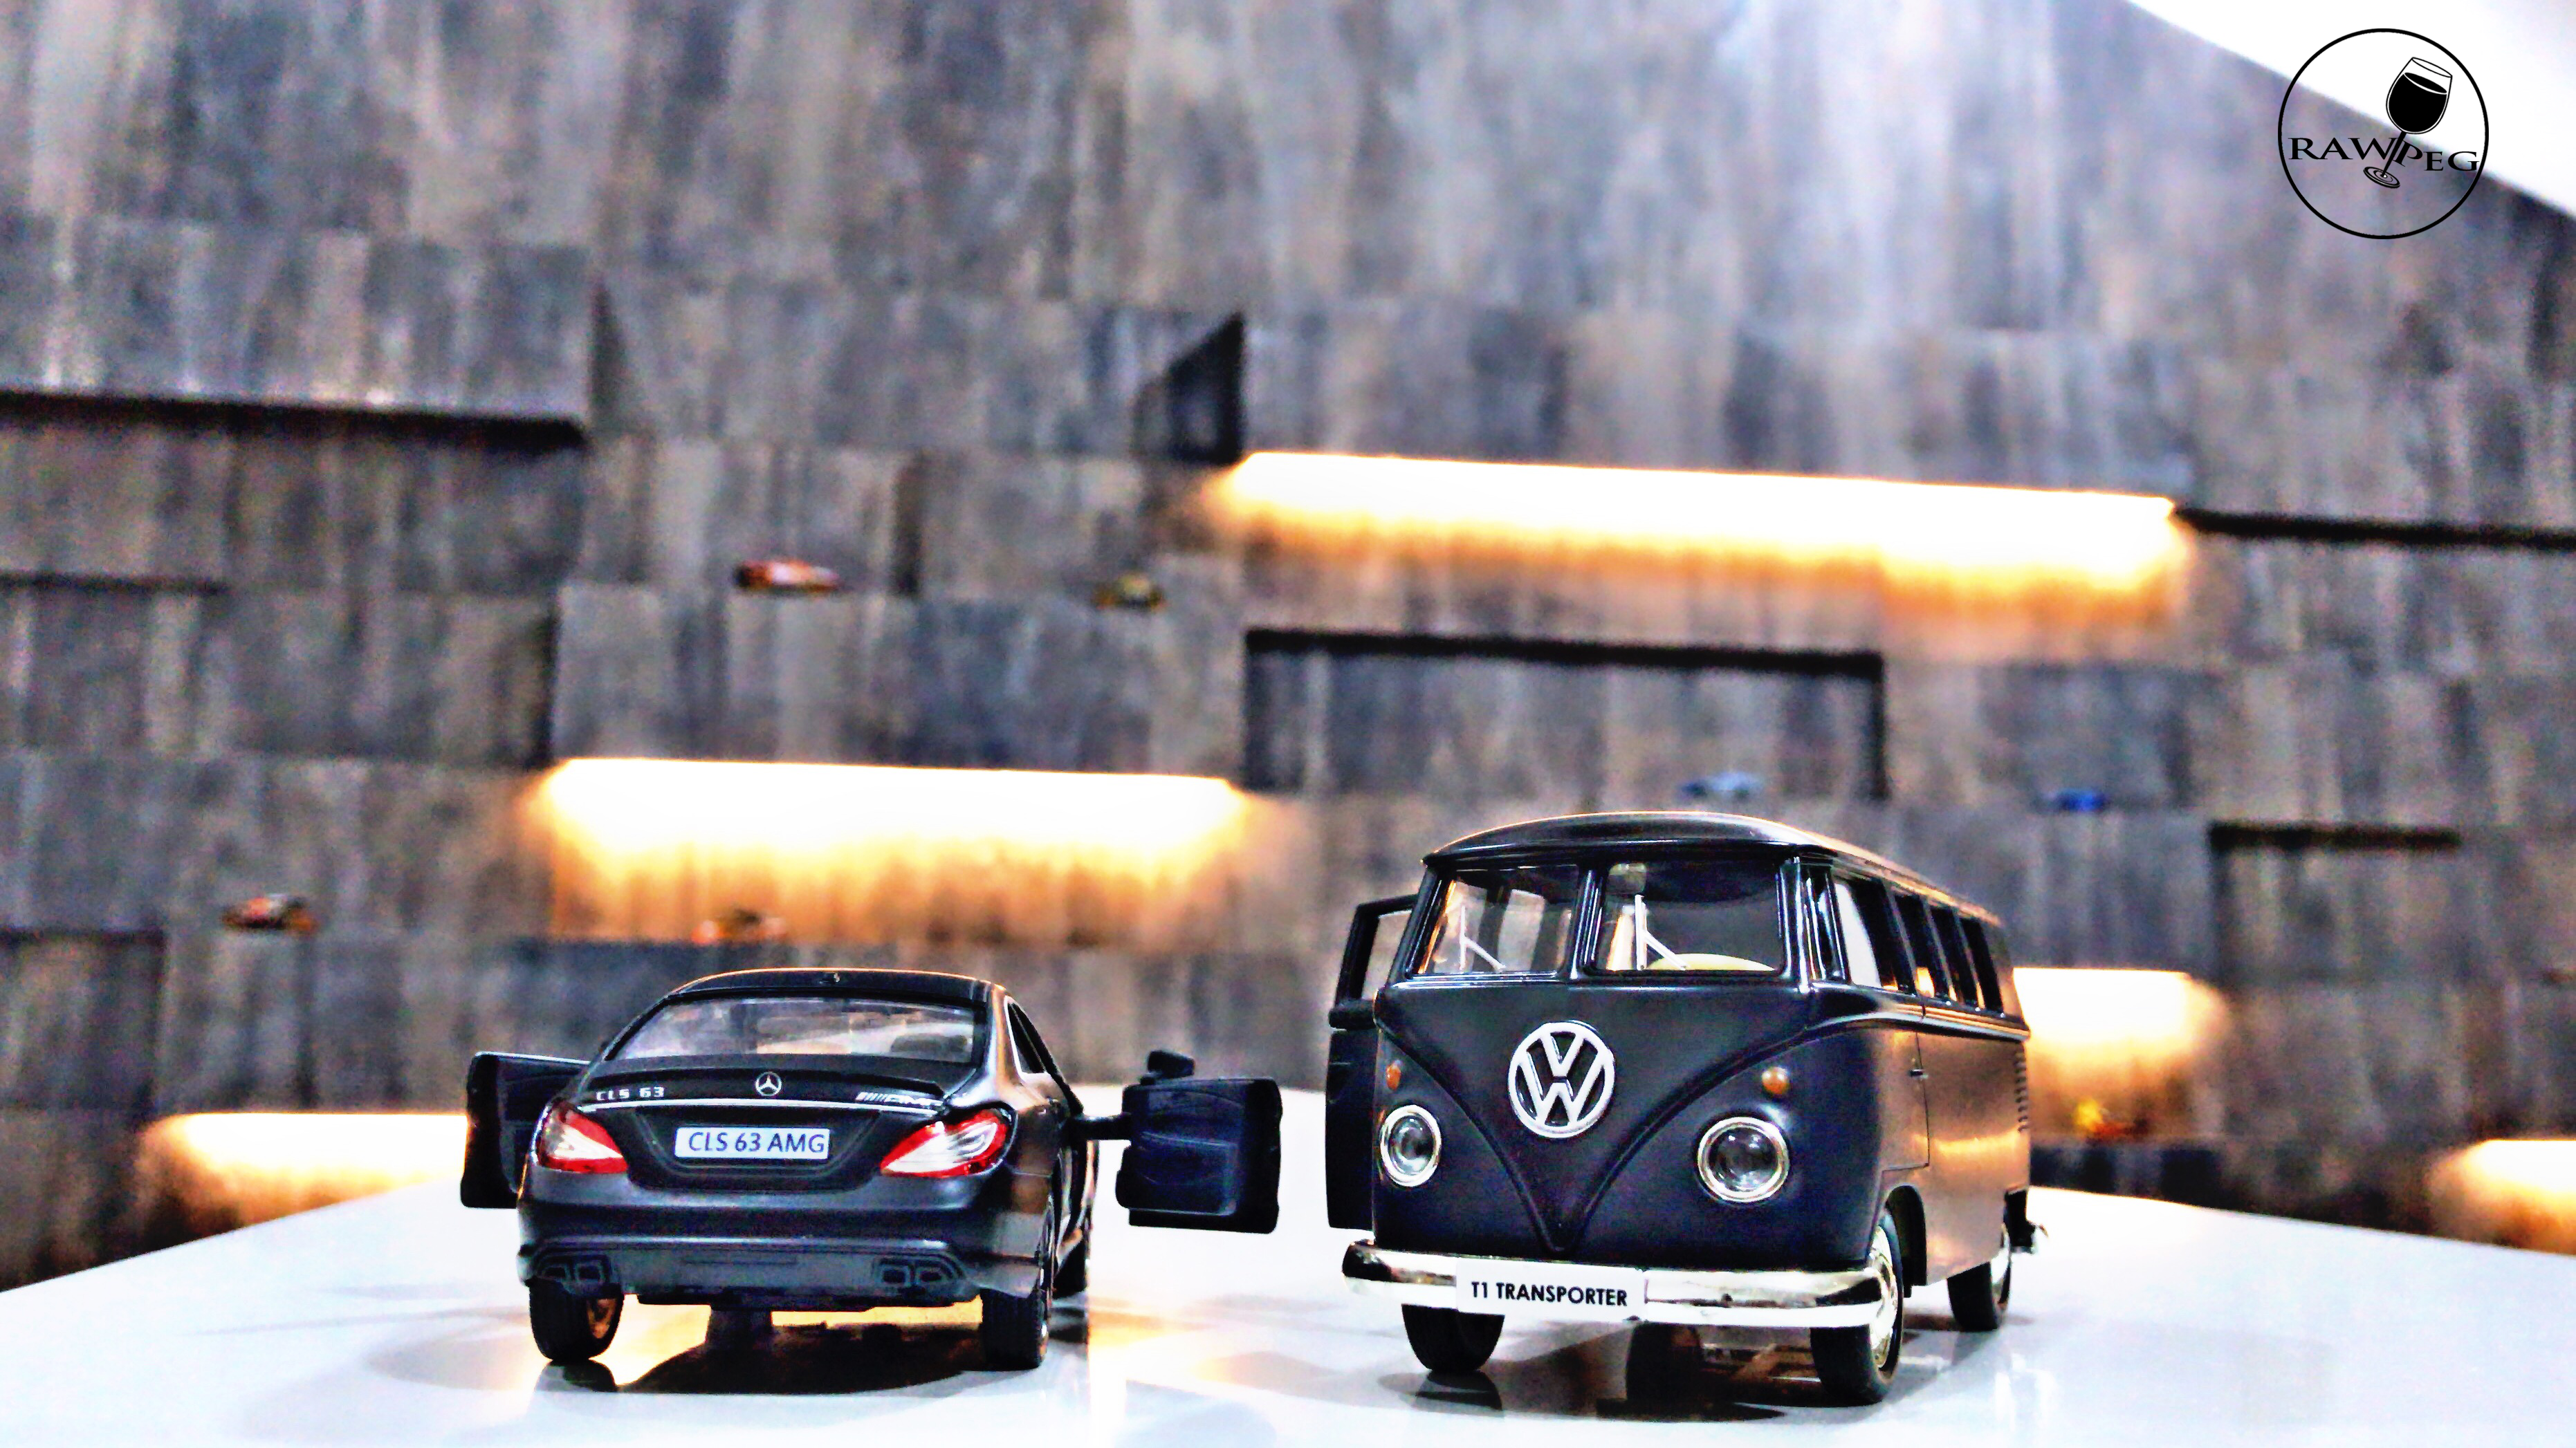 #rawpegstudio#scalemodels#benz#vw